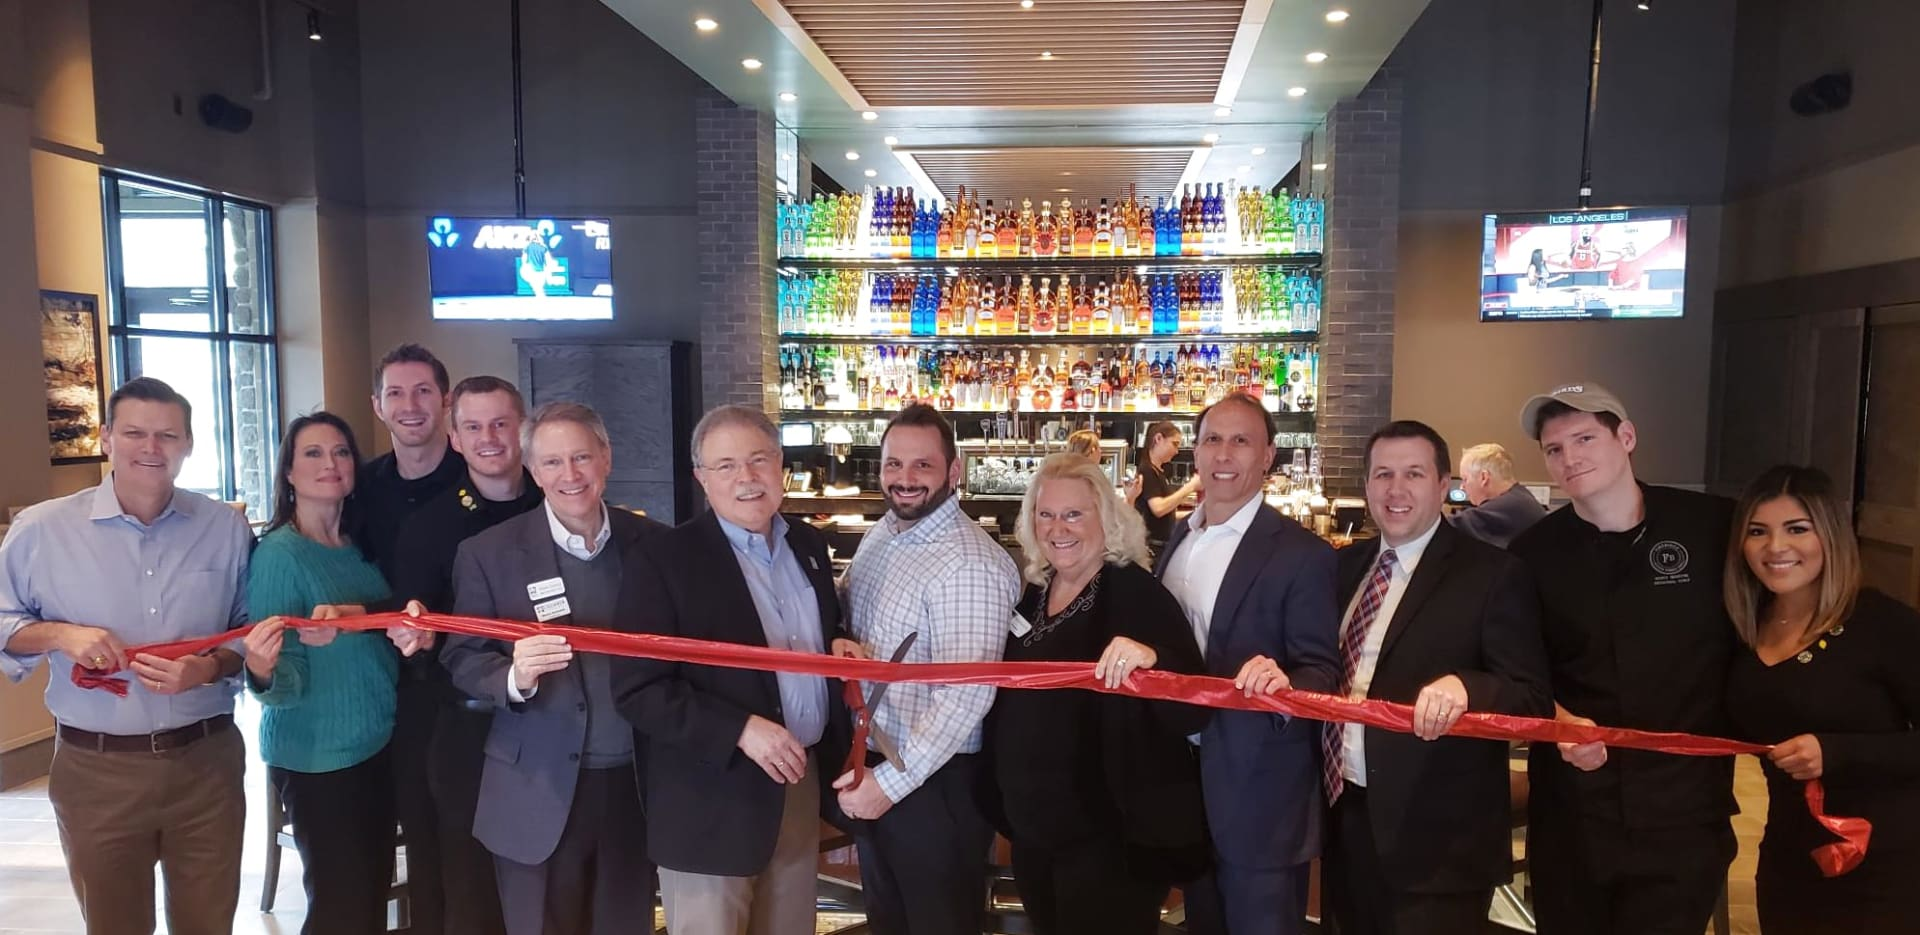 Firebirds-ribbon-cutting-20190124_120542-w1988-w1920.jpg